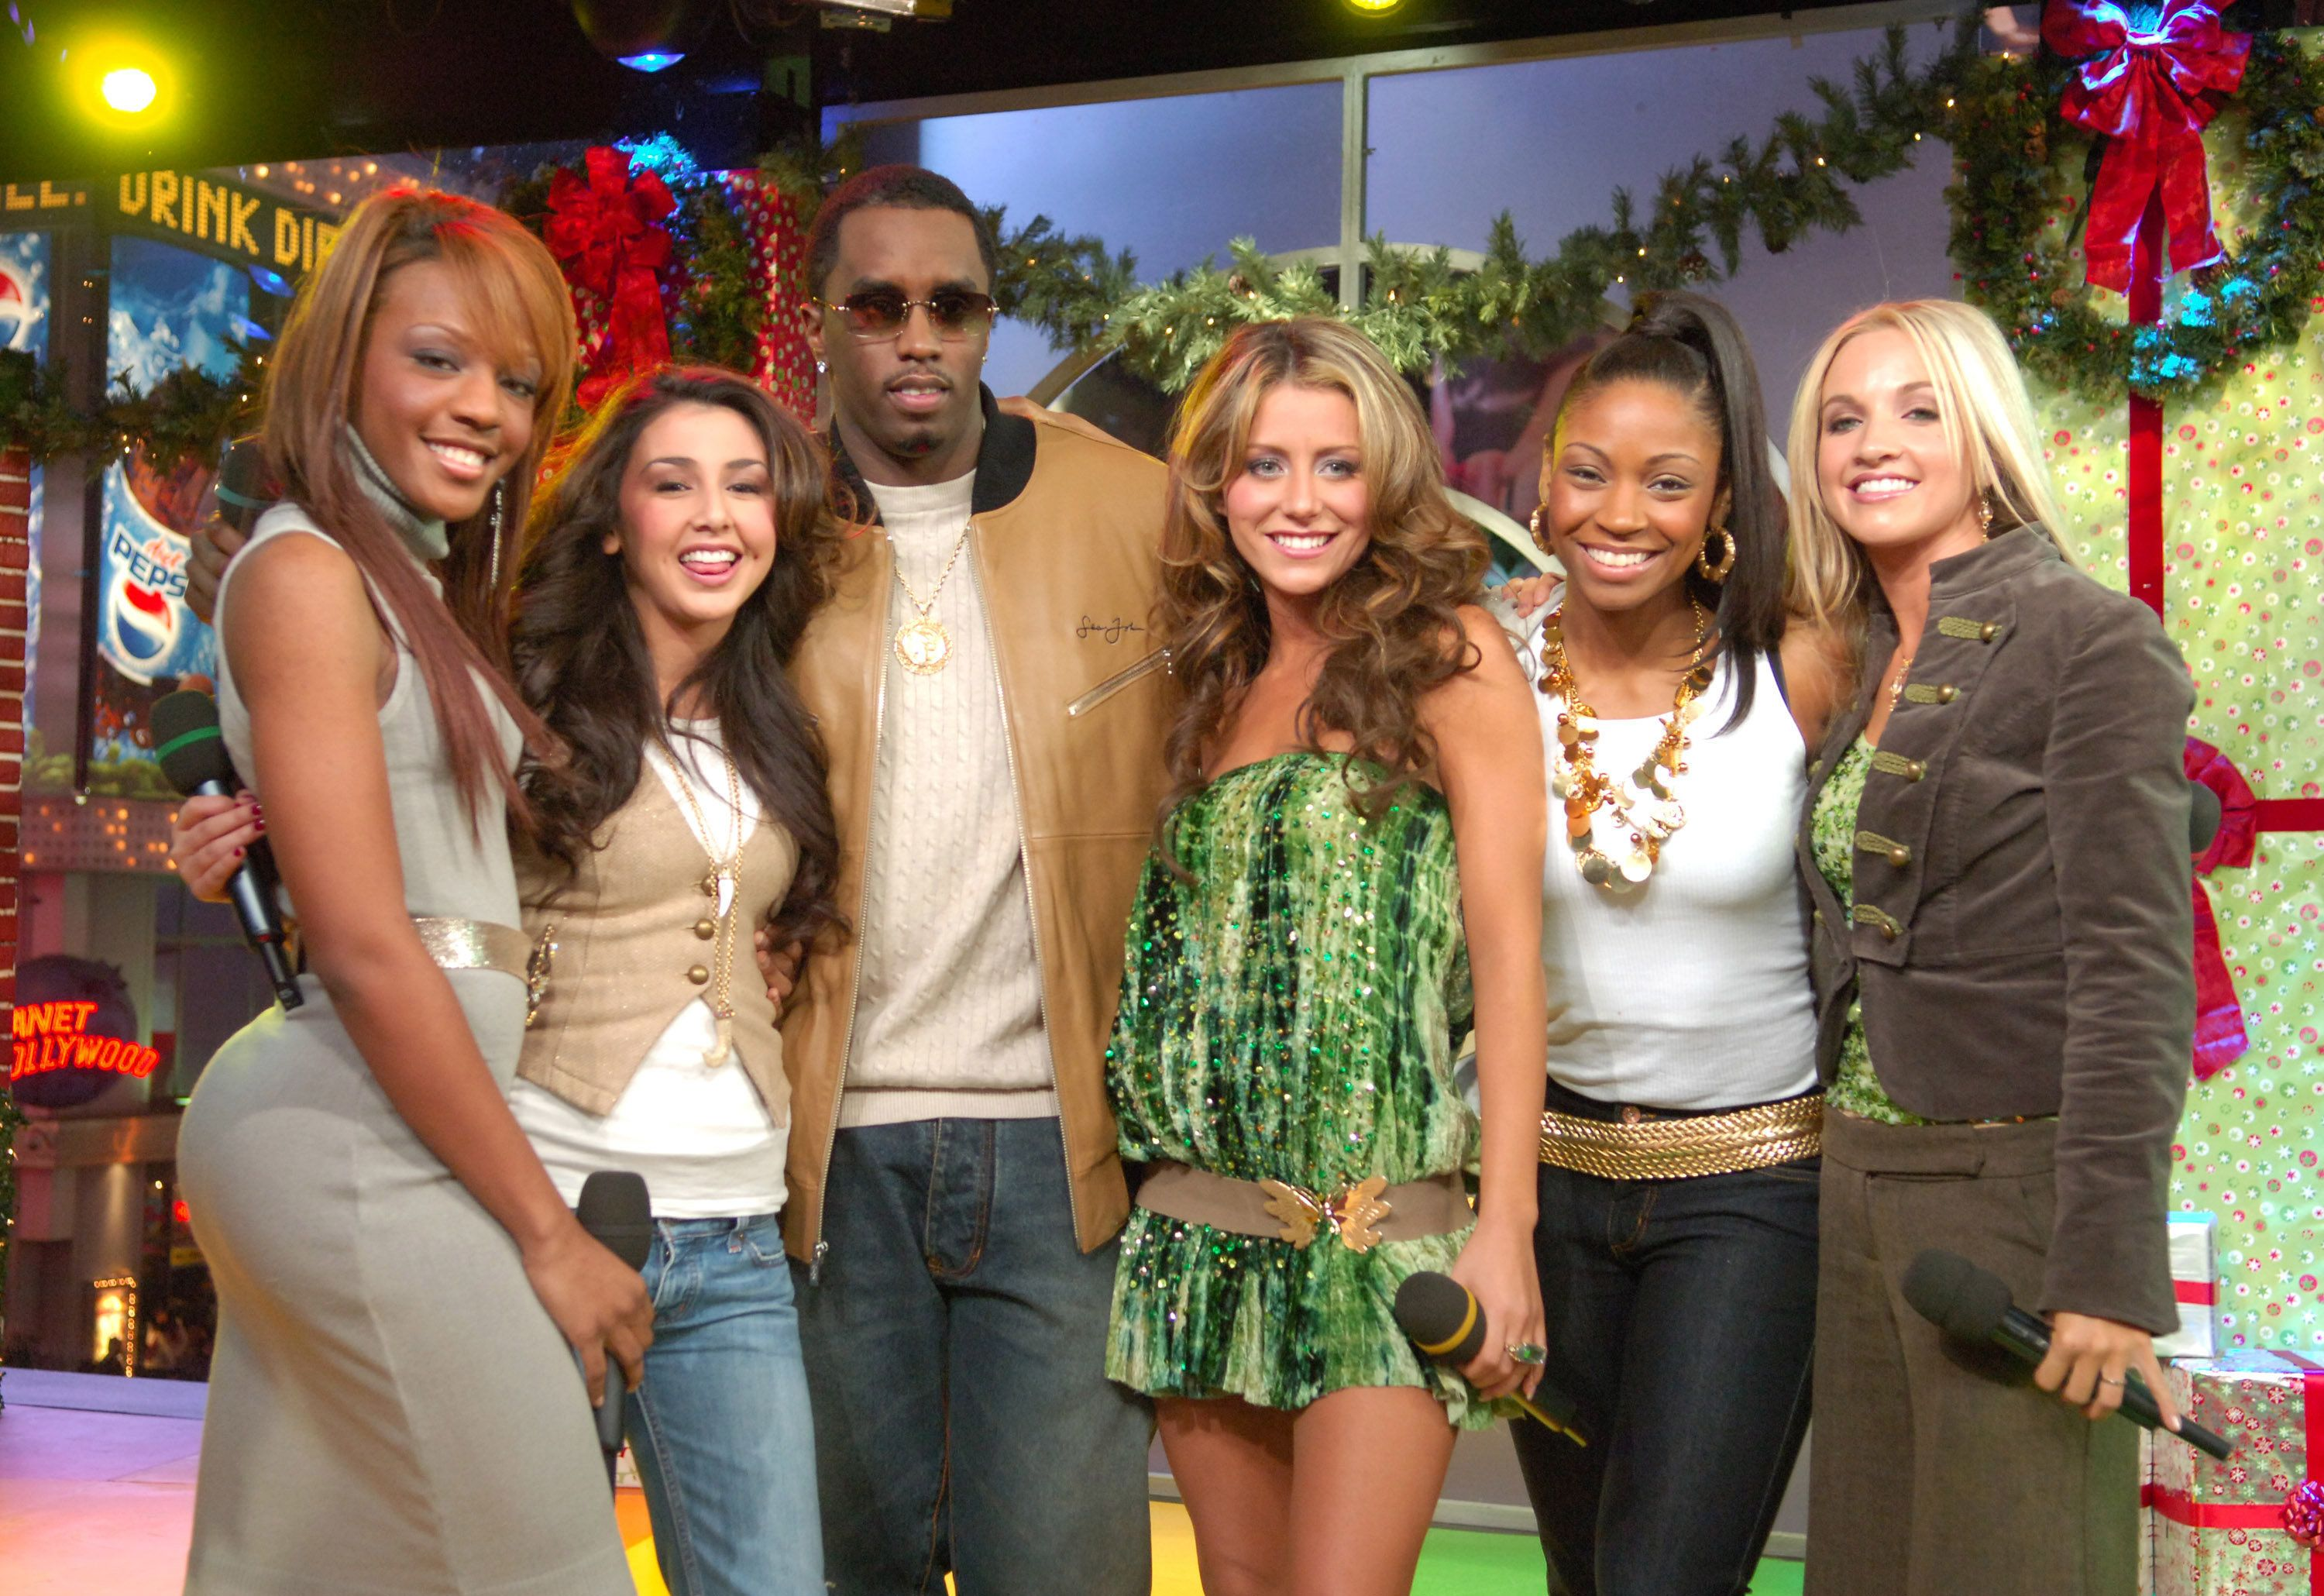 Sean 'Diddy' Combs (3rd from Left) and the 'Making the Band 3' Girls - Dawn, Aundrea, Aubrey O'Day, Tiffany and Shannon (Photo by Michael Loccisano/FilmMagic)